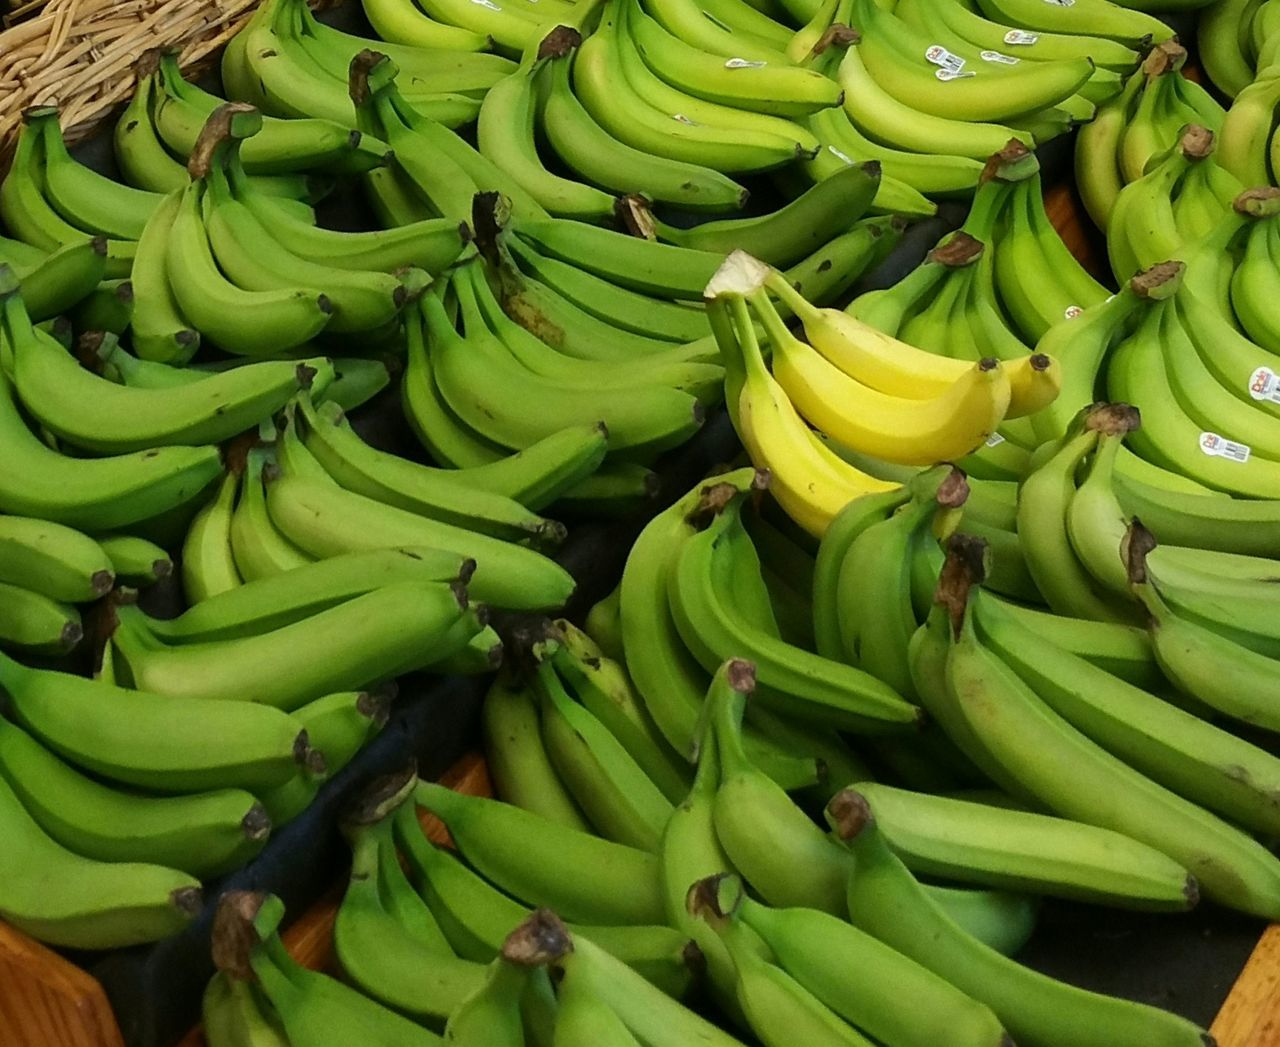 banana, food and drink, green color, fruit, food, no people, for sale, banana tree, healthy eating, freshness, market, day, outdoors